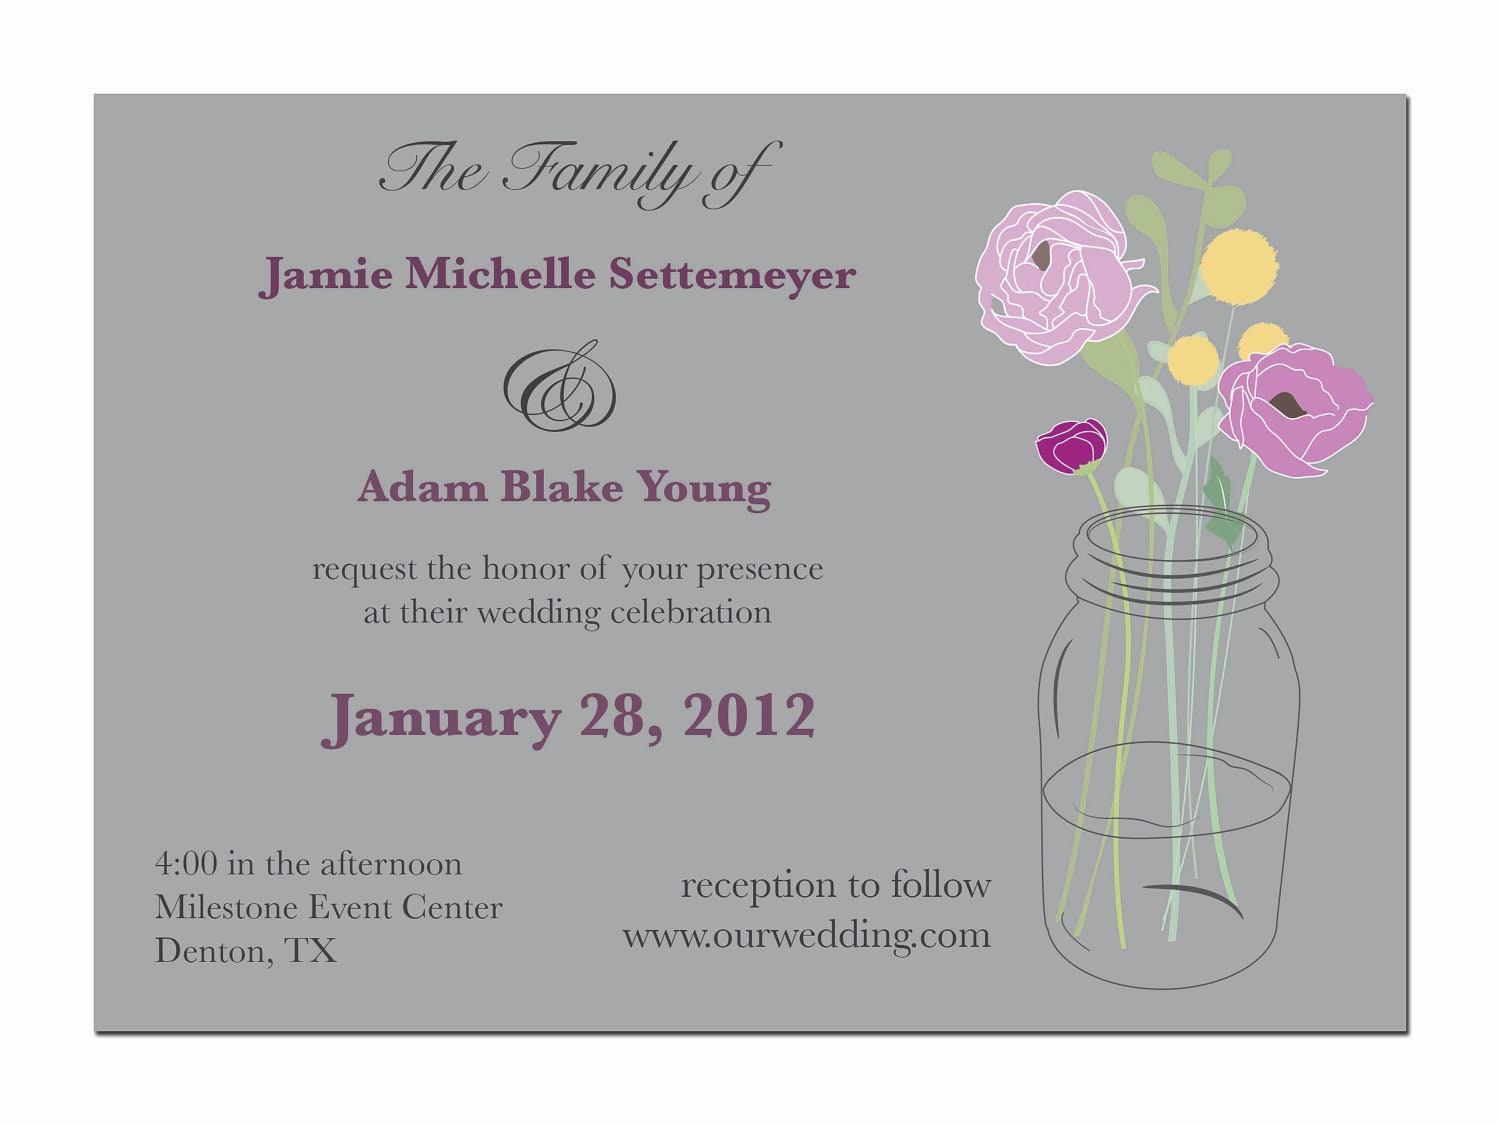 Drop In Party Invitation Wording is amazing invitations ideas